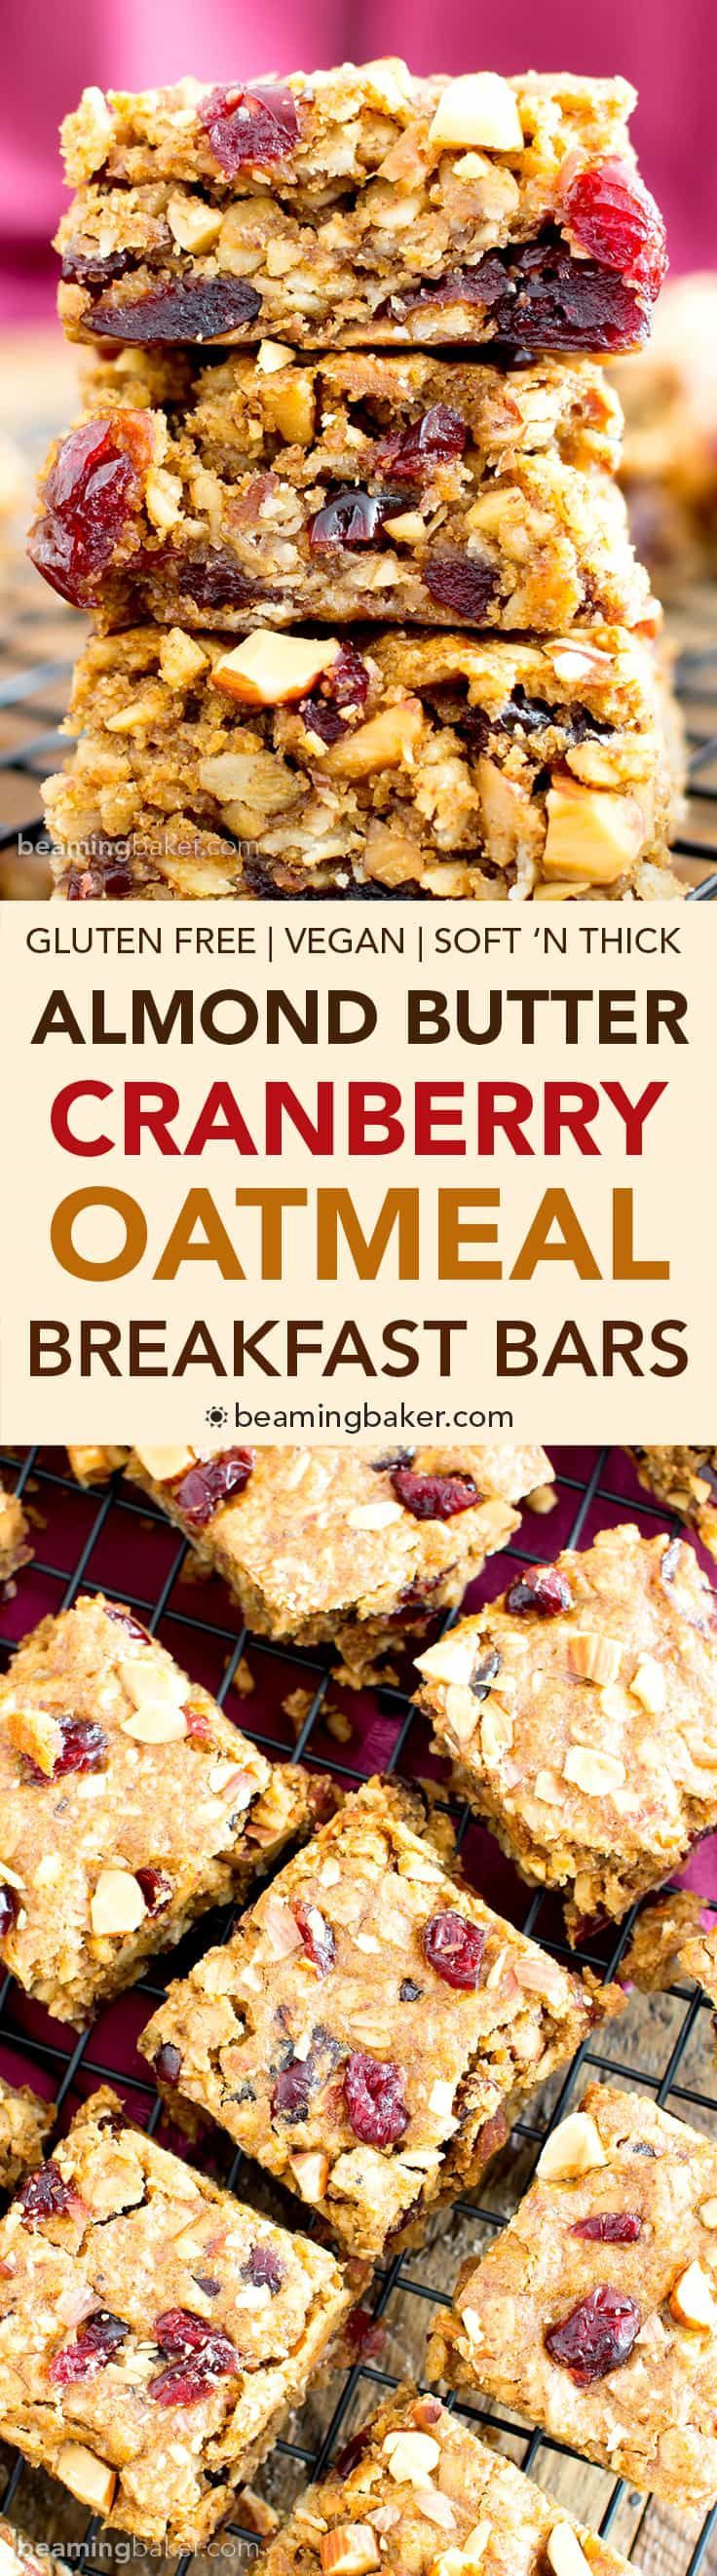 Gluten Free Cranberry Almond Butter Oatmeal Breakfast Bars (V, GF): an easy recipe for soft, texture-rich energy breakfast bars bursting with cranberries and almonds. #WholeGrain #Vegan #GlutenFree #DairyFree | BeamingBaker.com